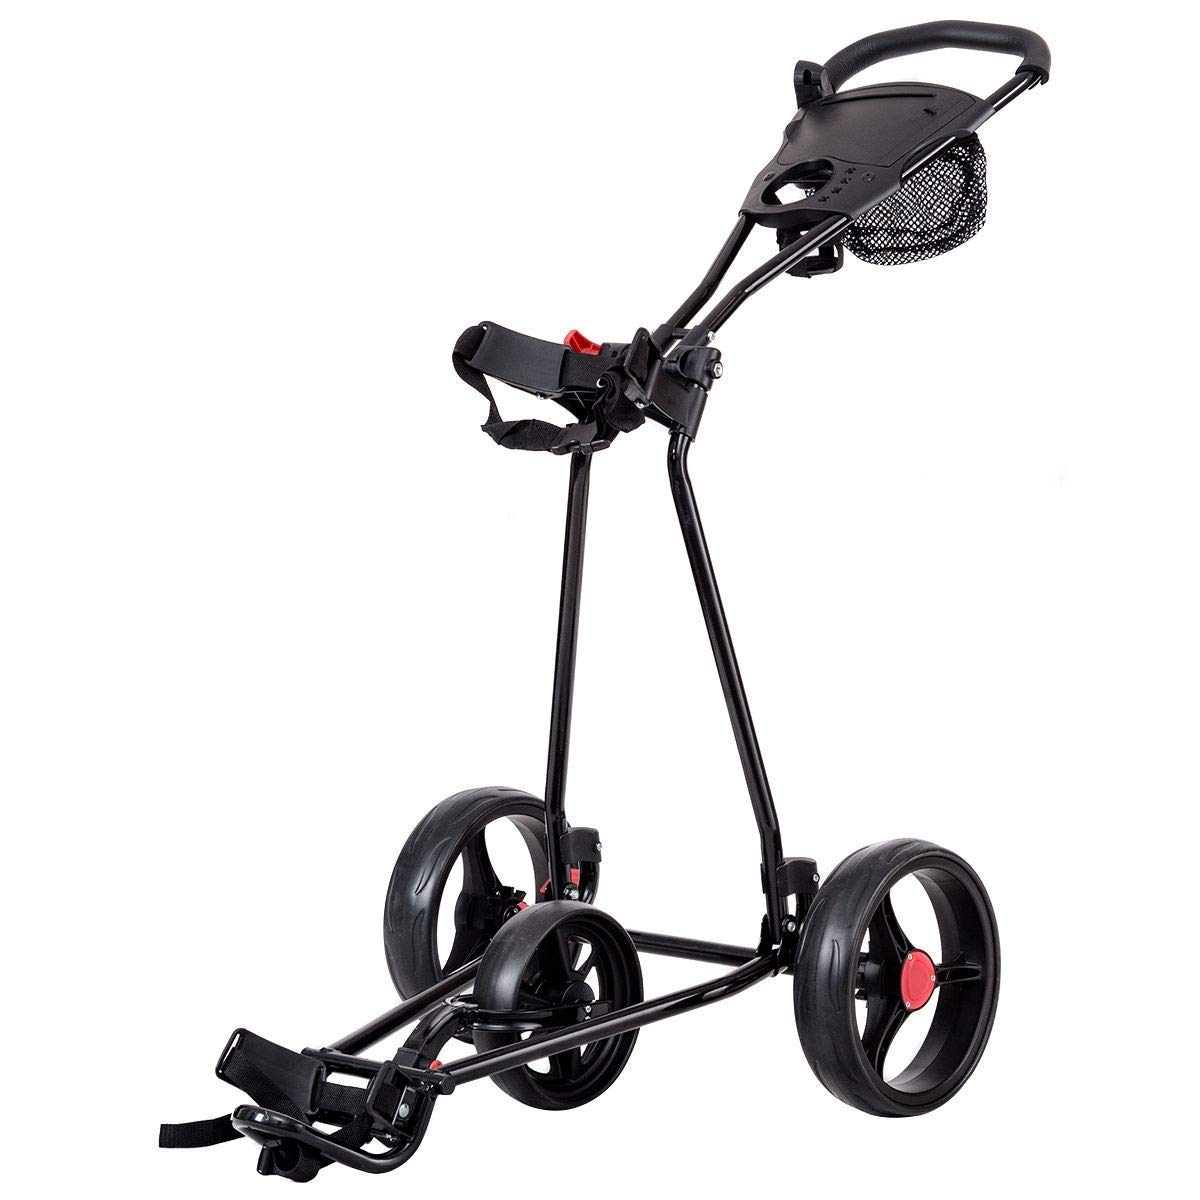 BeUniqueToday Durable Foldable Steel Golf Cart with Mesh Bag, Lightweight Foldable Steel Golf Cart with Mesh Bag, Foldable Steel Golf Cart with Easy Clip Bag Straps, Durable Foldable Steel Golf Cart